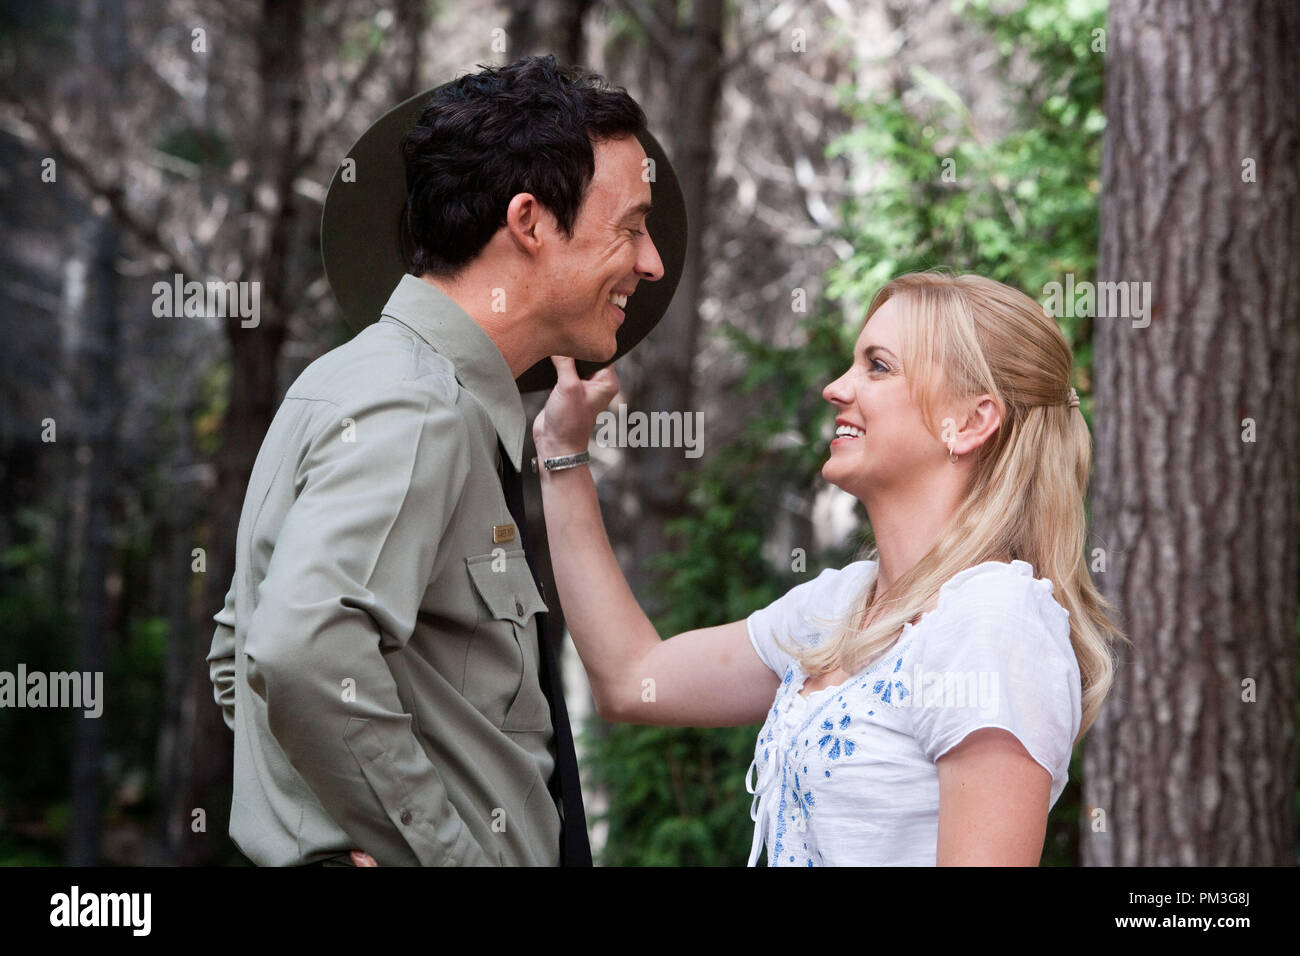 L R Tom Cavanagh As Ranger Smith And Anna Faris As Rachel In Warner Bros Pictures Live Action Computer Animated Adventure In 3d Yogi Bear A Warner Bros Pictures Release 2010 Stock Photo Alamy